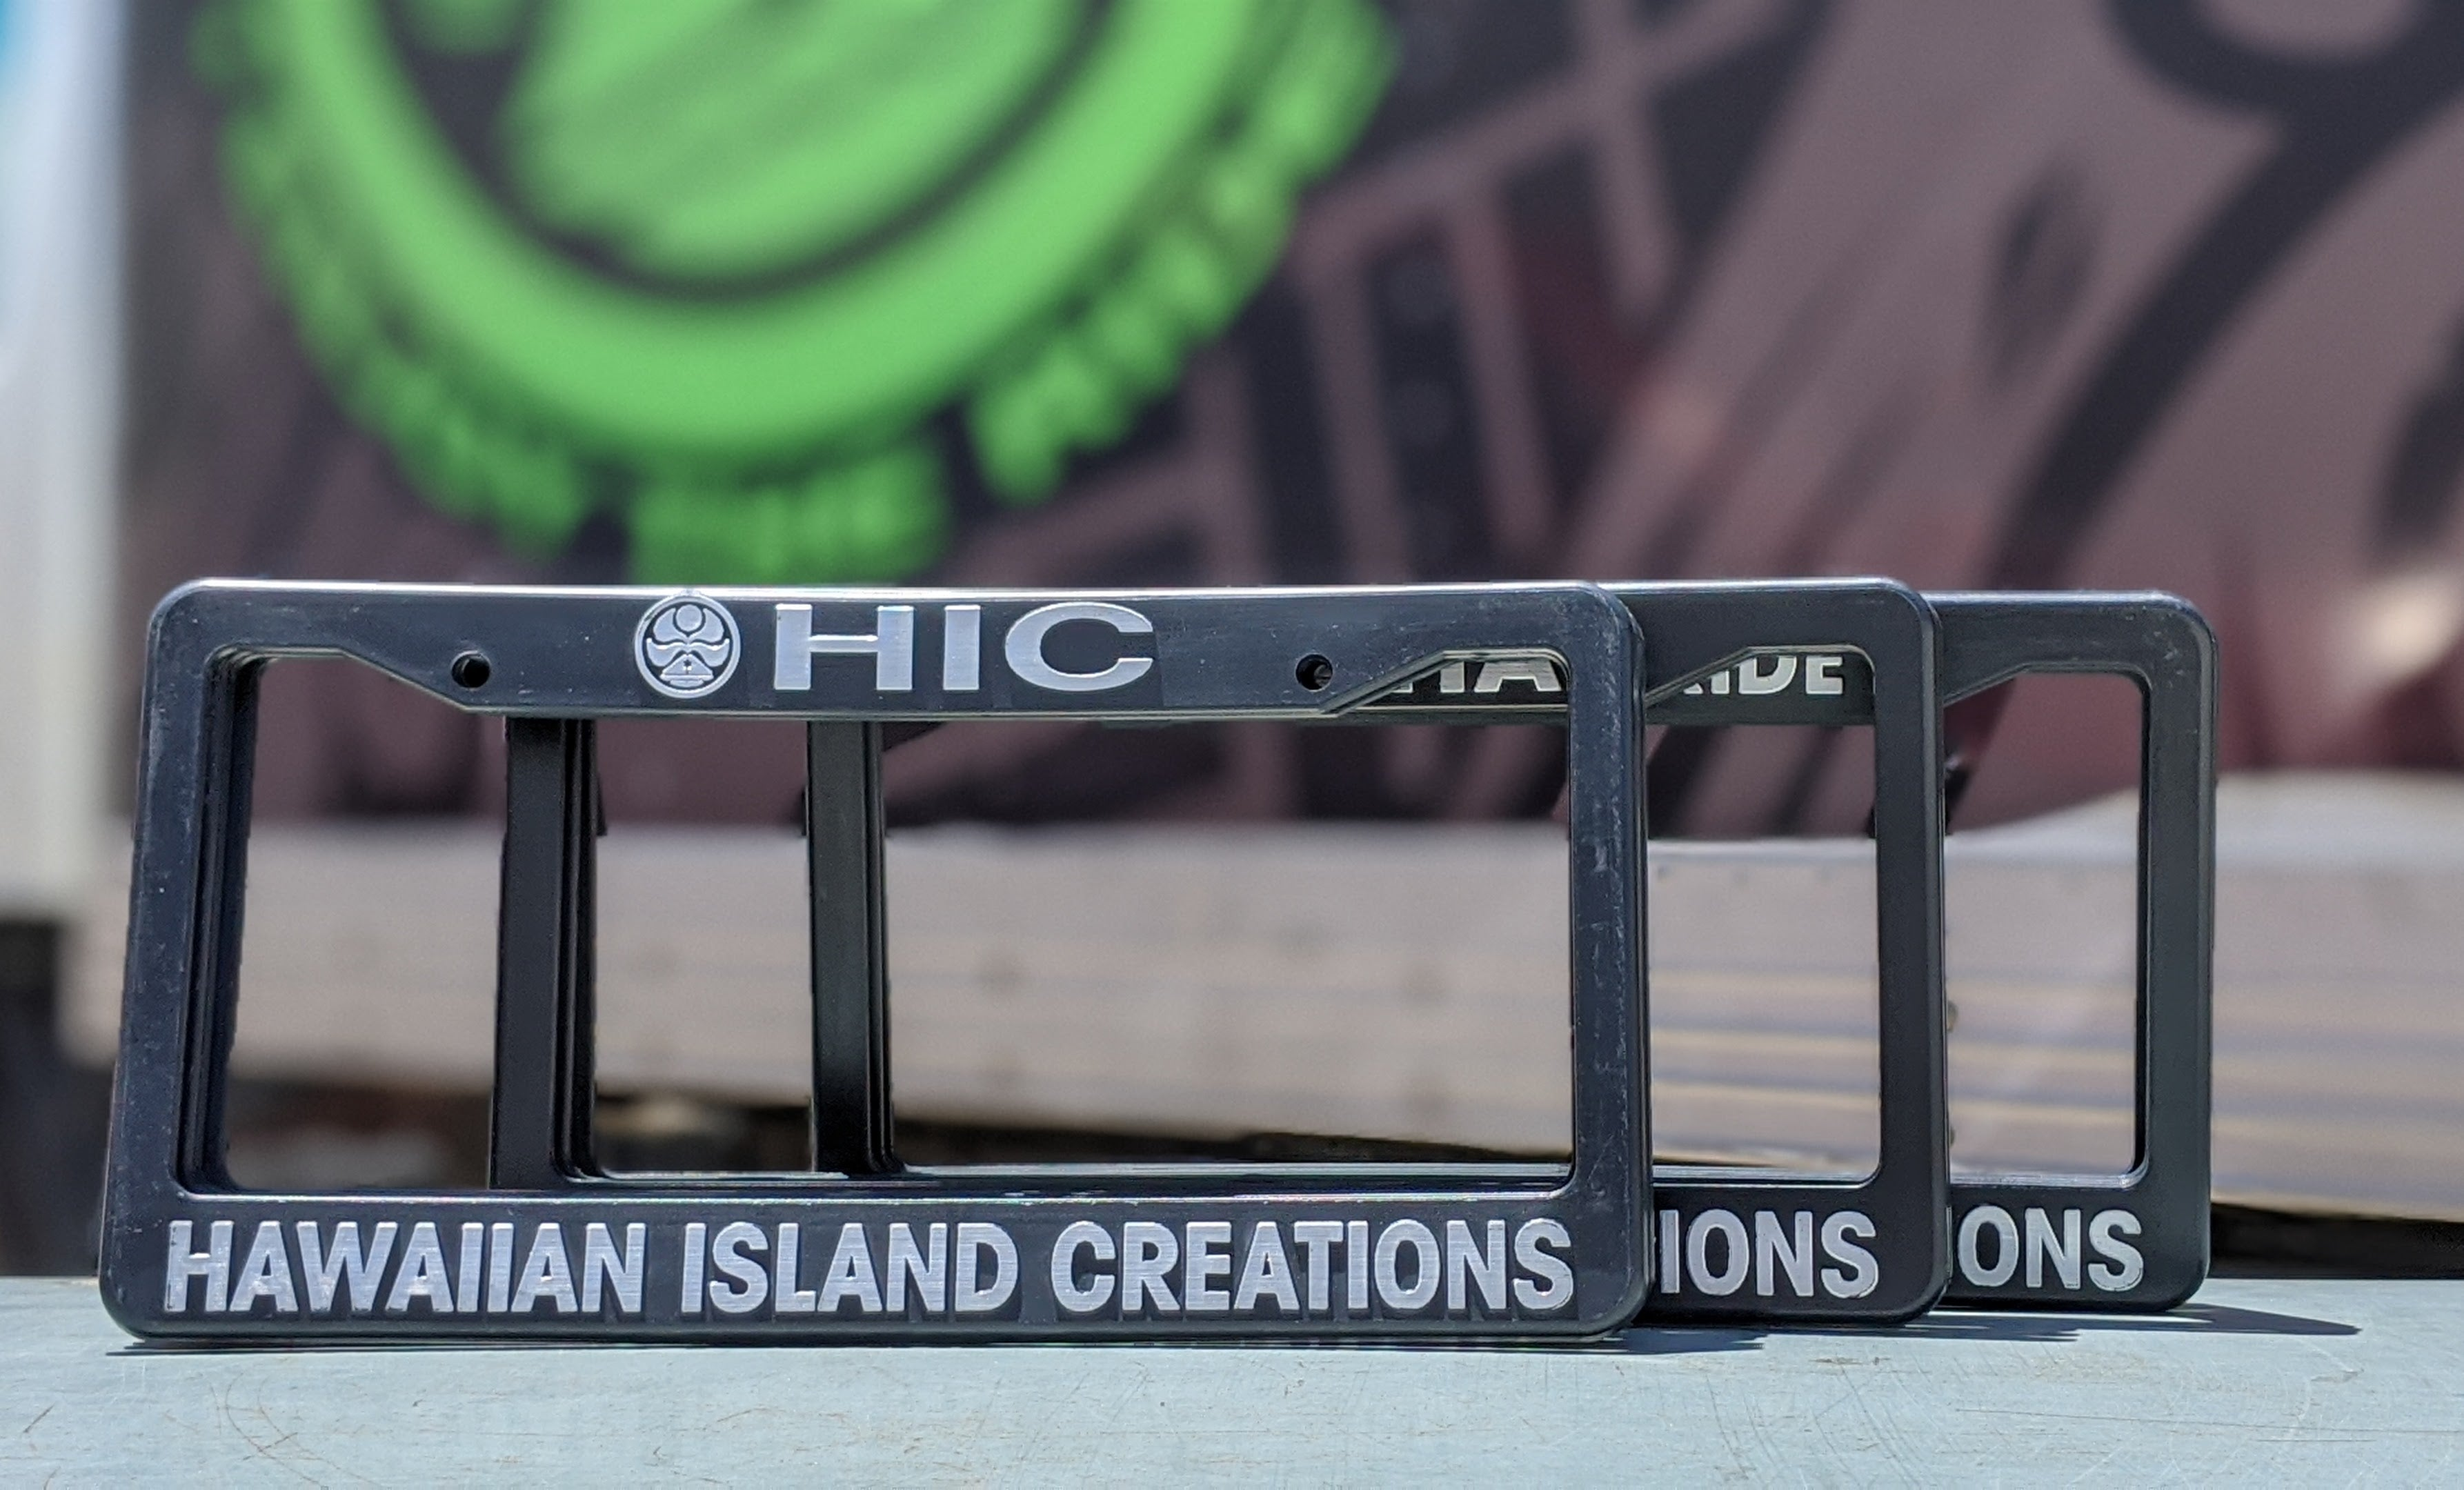 HIC License Plate Frames